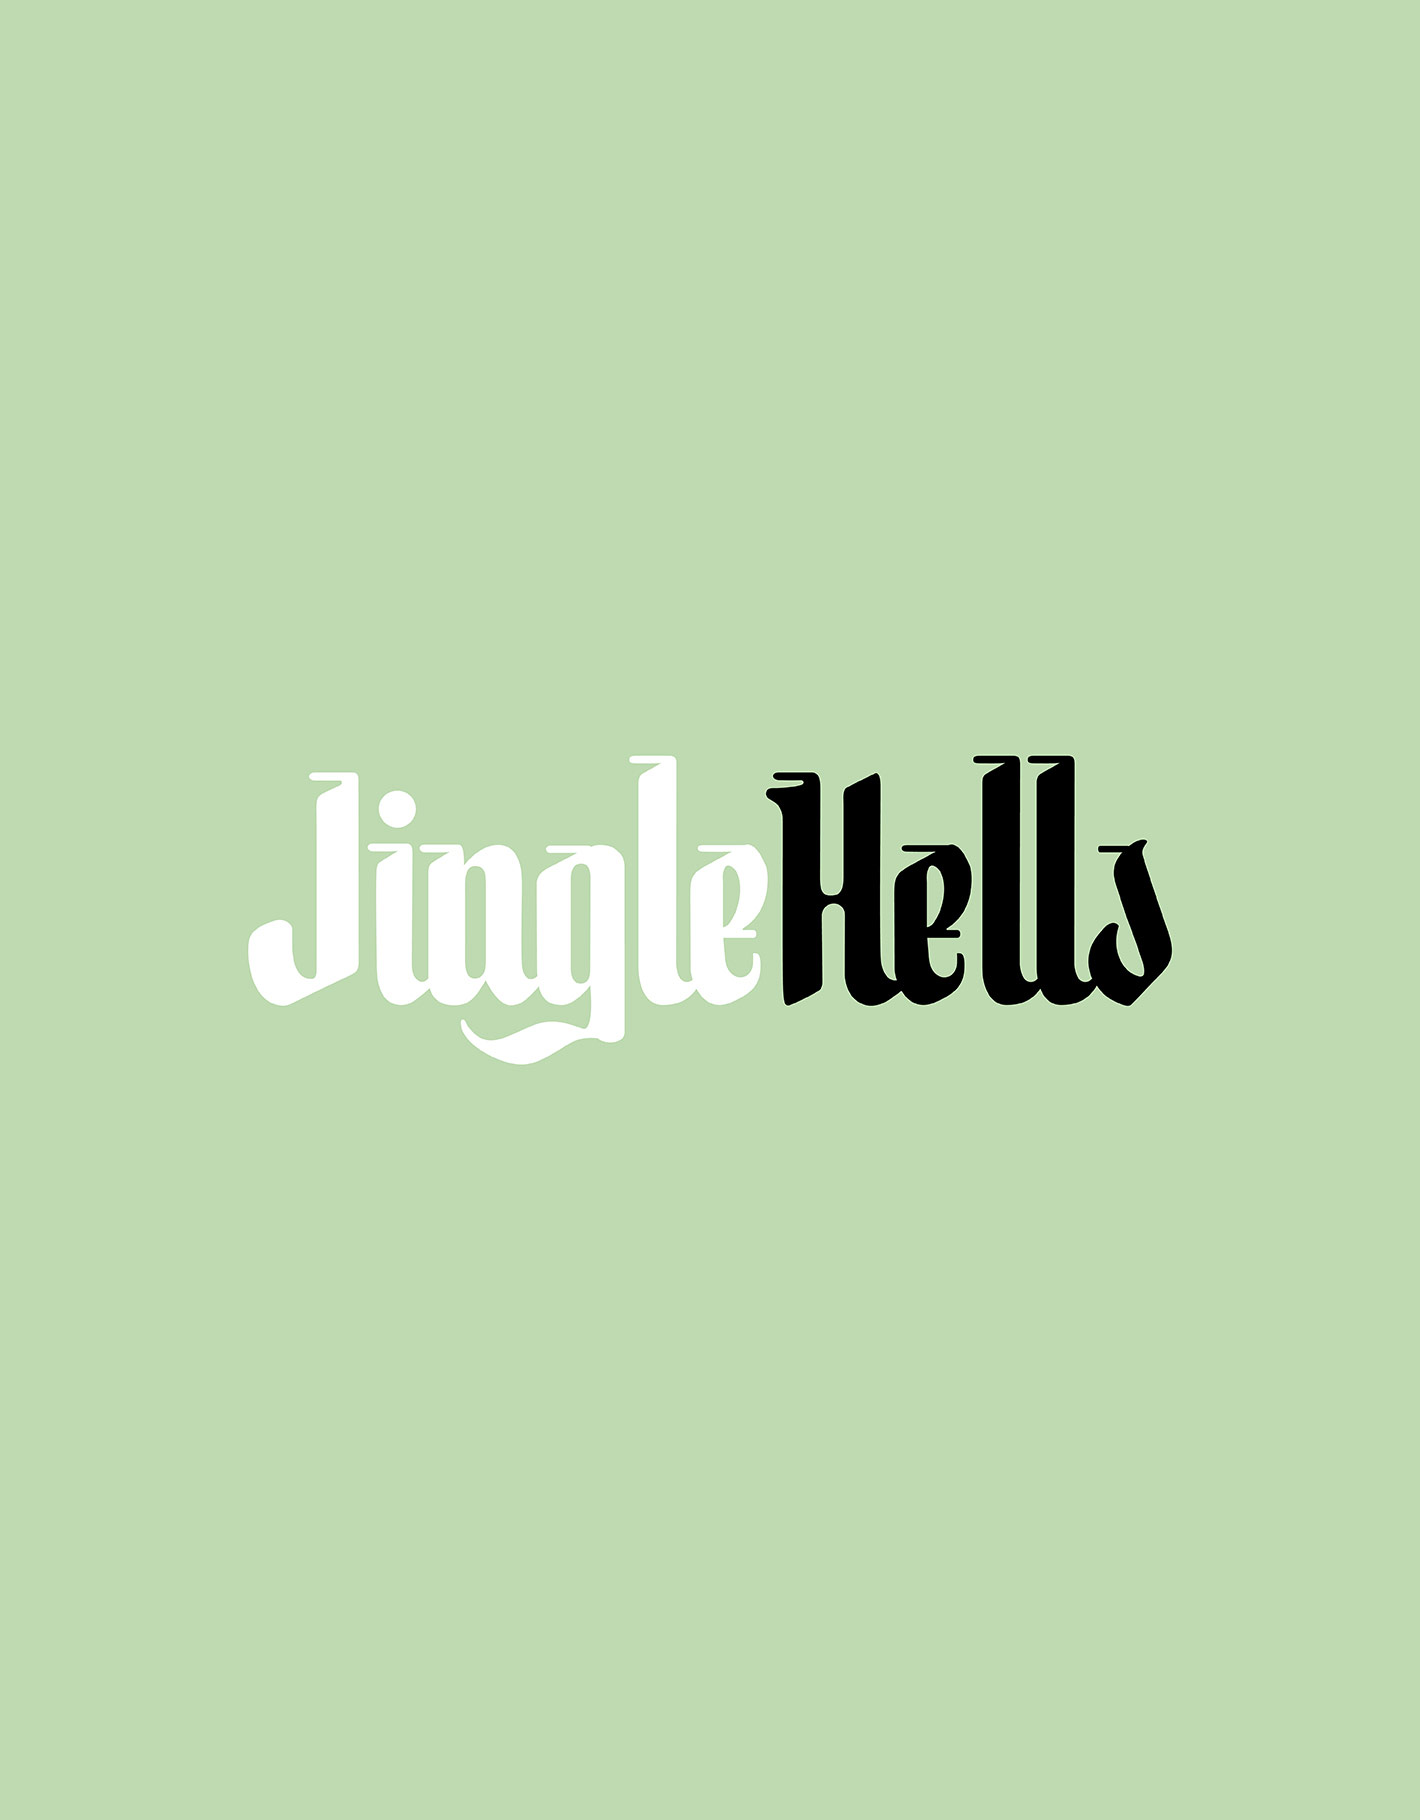 Mint green background with blackletter inspired logotype for Jingle Hells brand